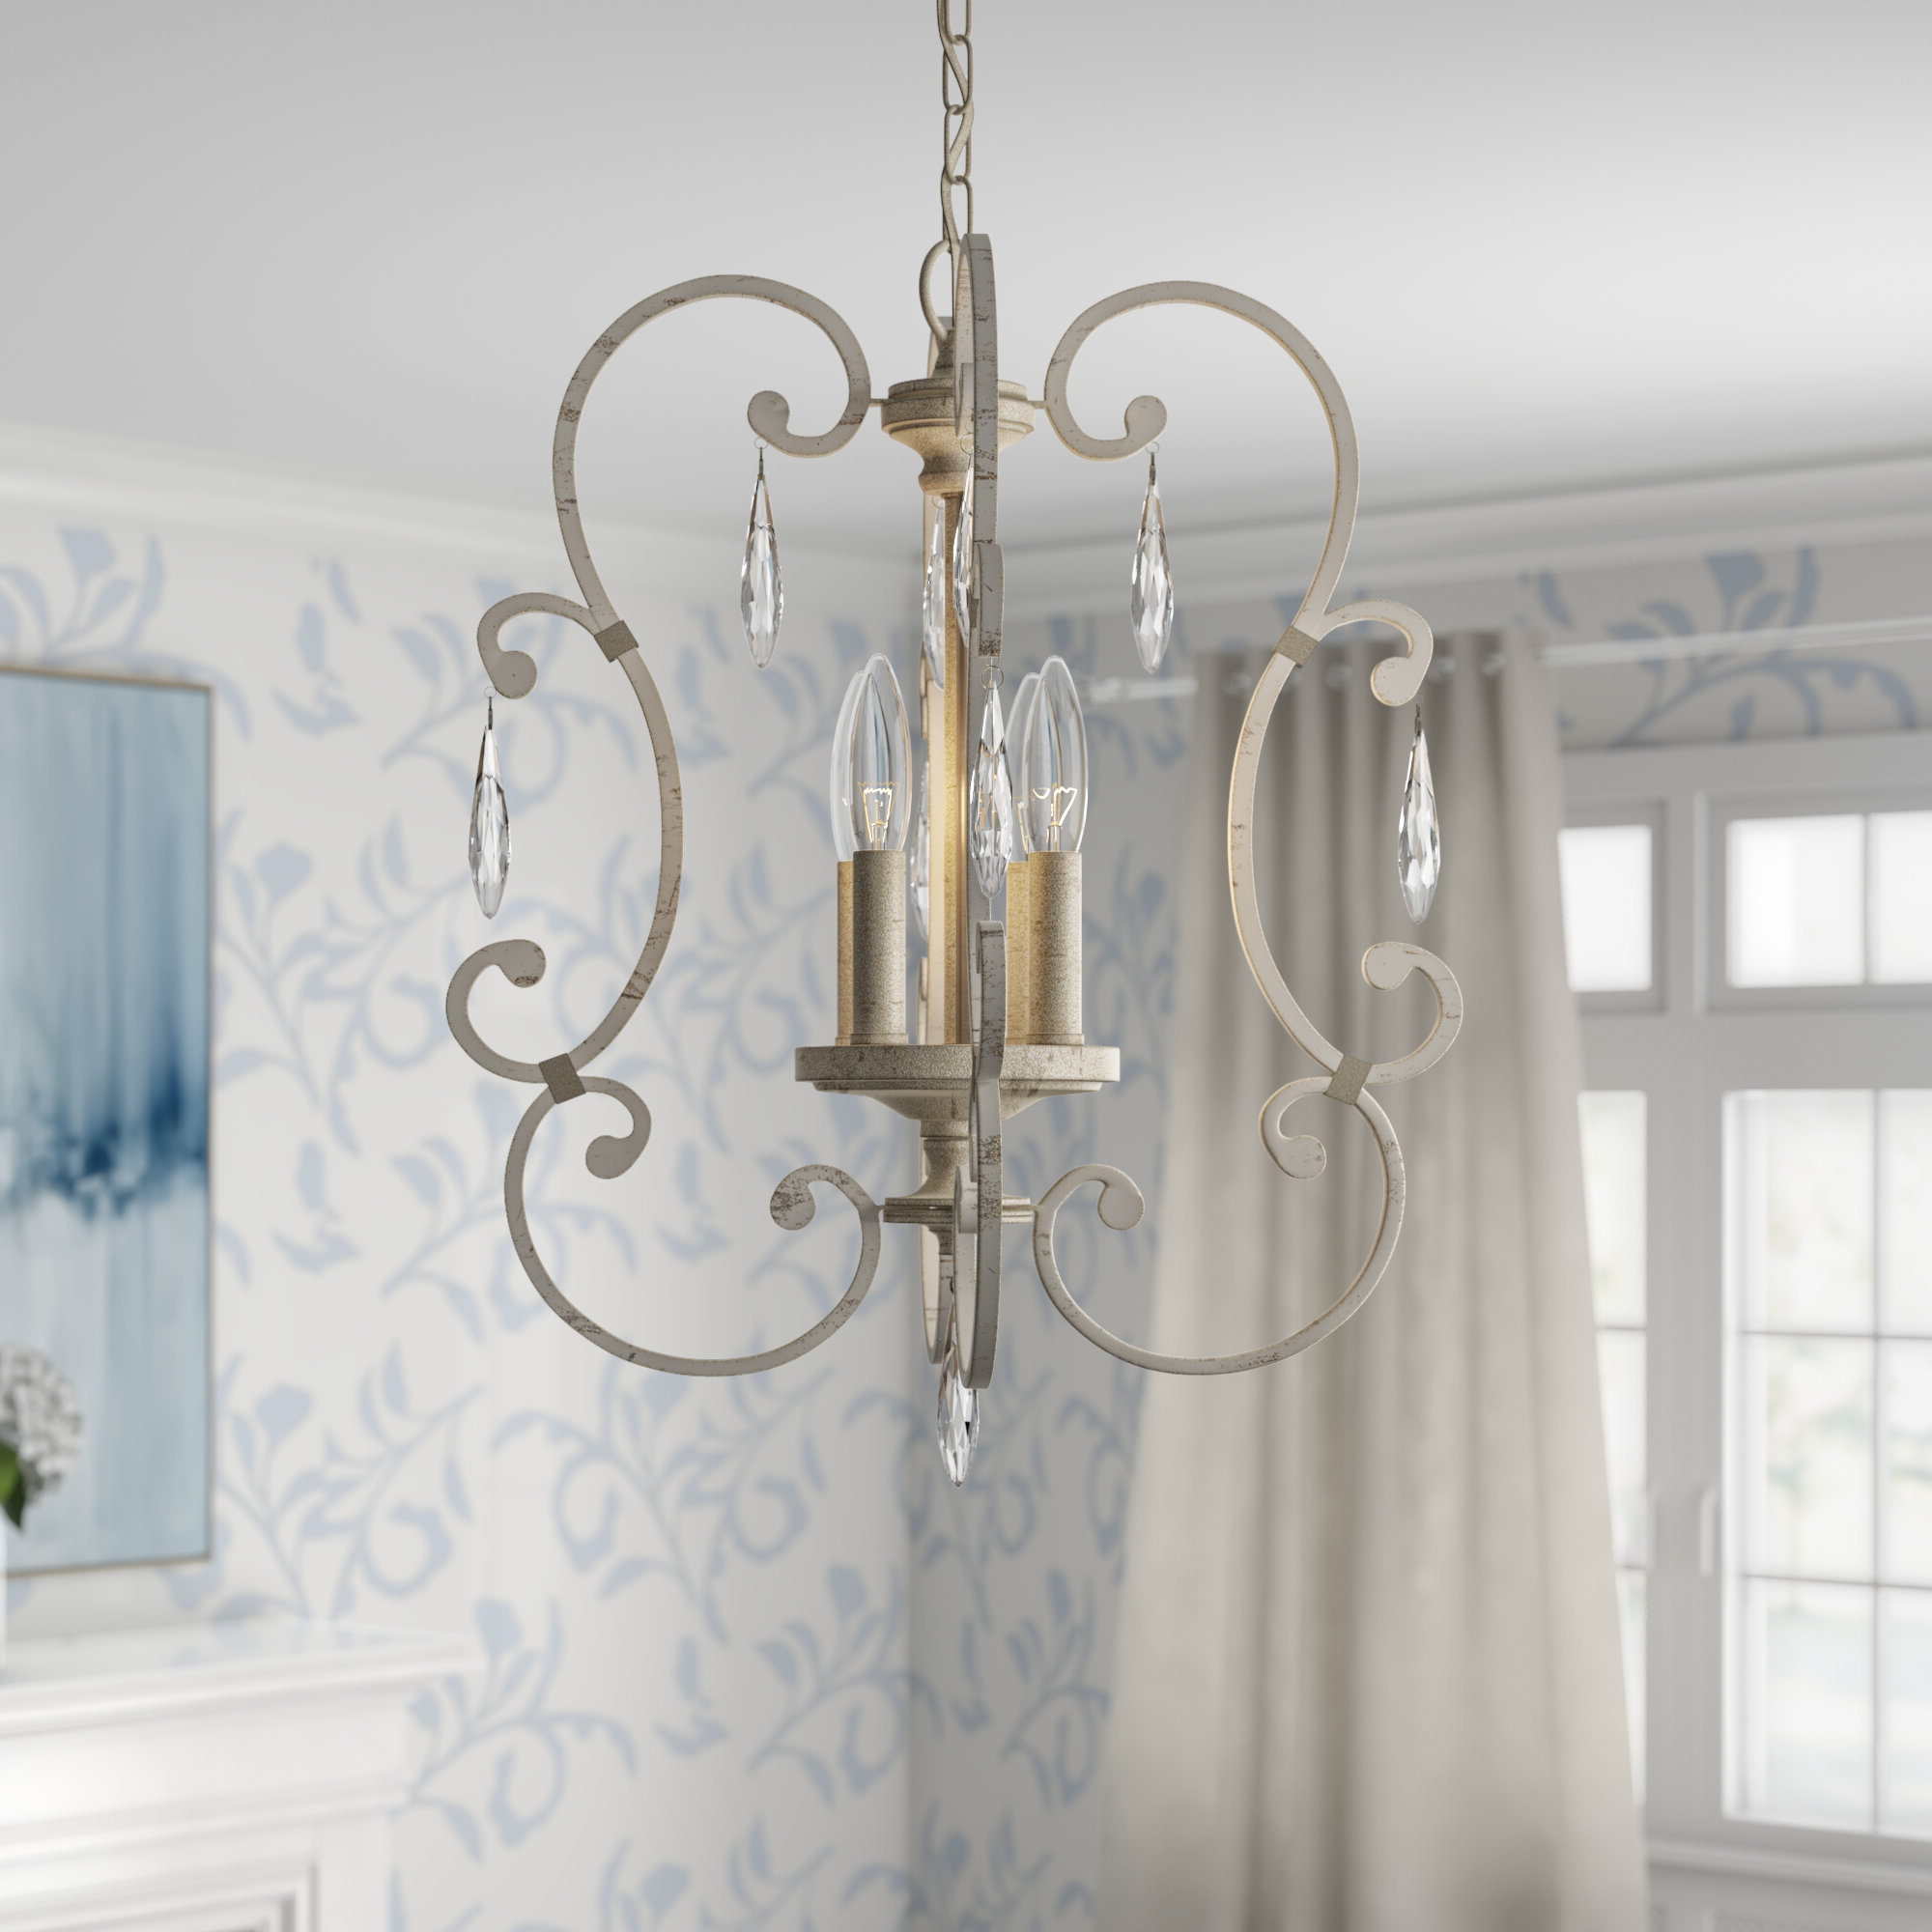 Oriana 4 Light Single Geometric Chandeliers With Regard To Fashionable Oriana 4 Light Single Geometric Chandelier (Gallery 1 of 20)